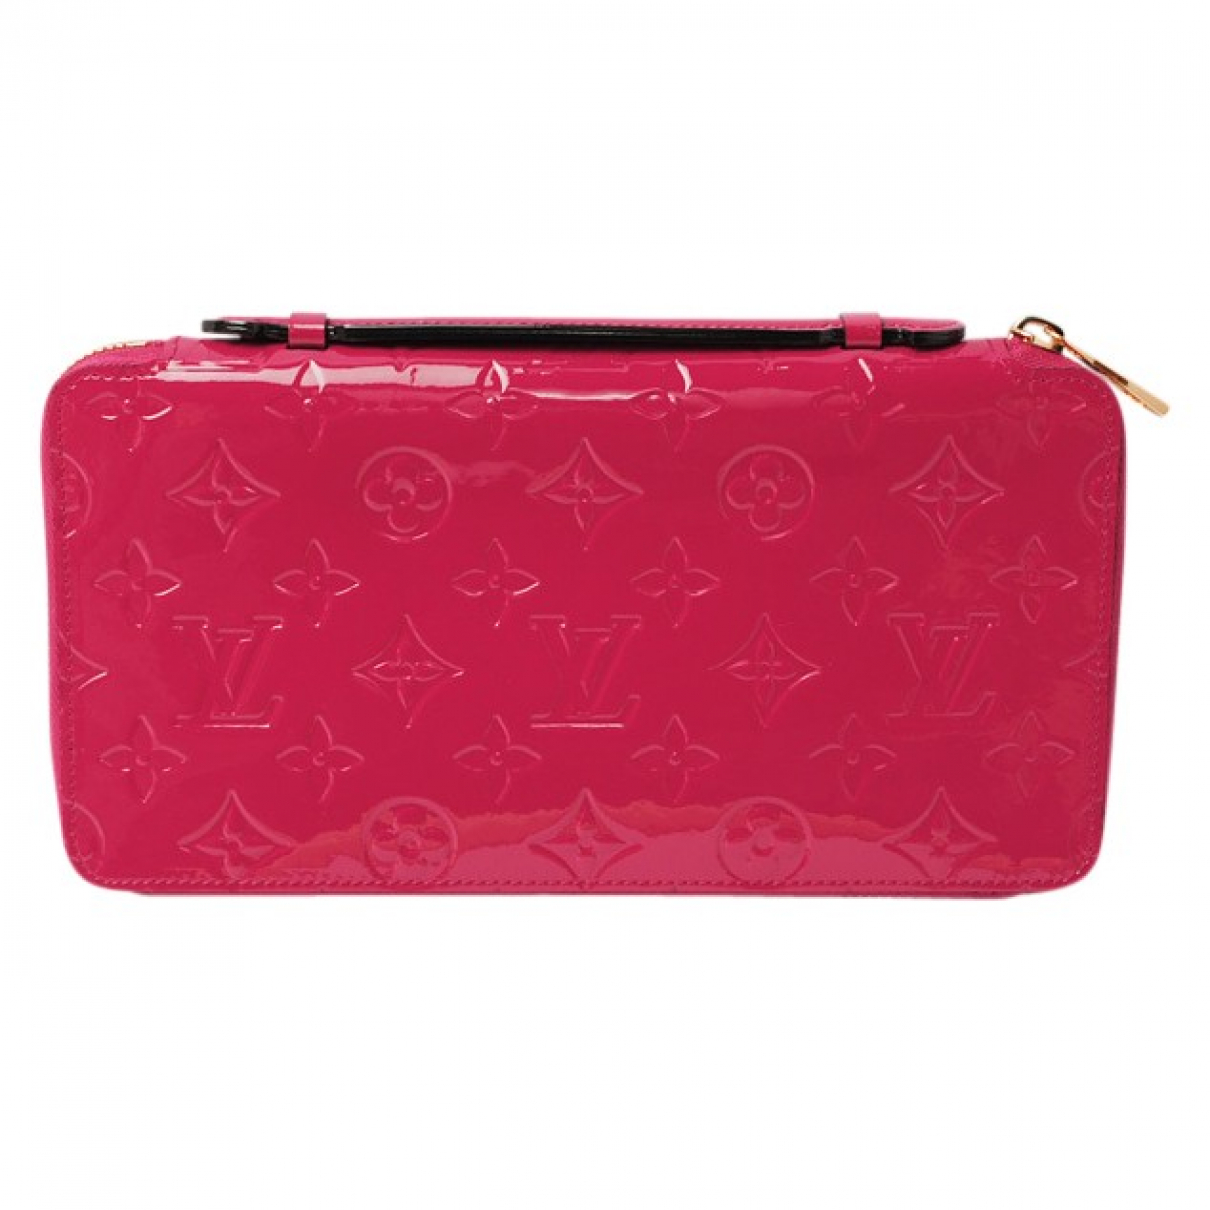 Louis Vuitton \N Portemonnaie in  Rot Lackleder